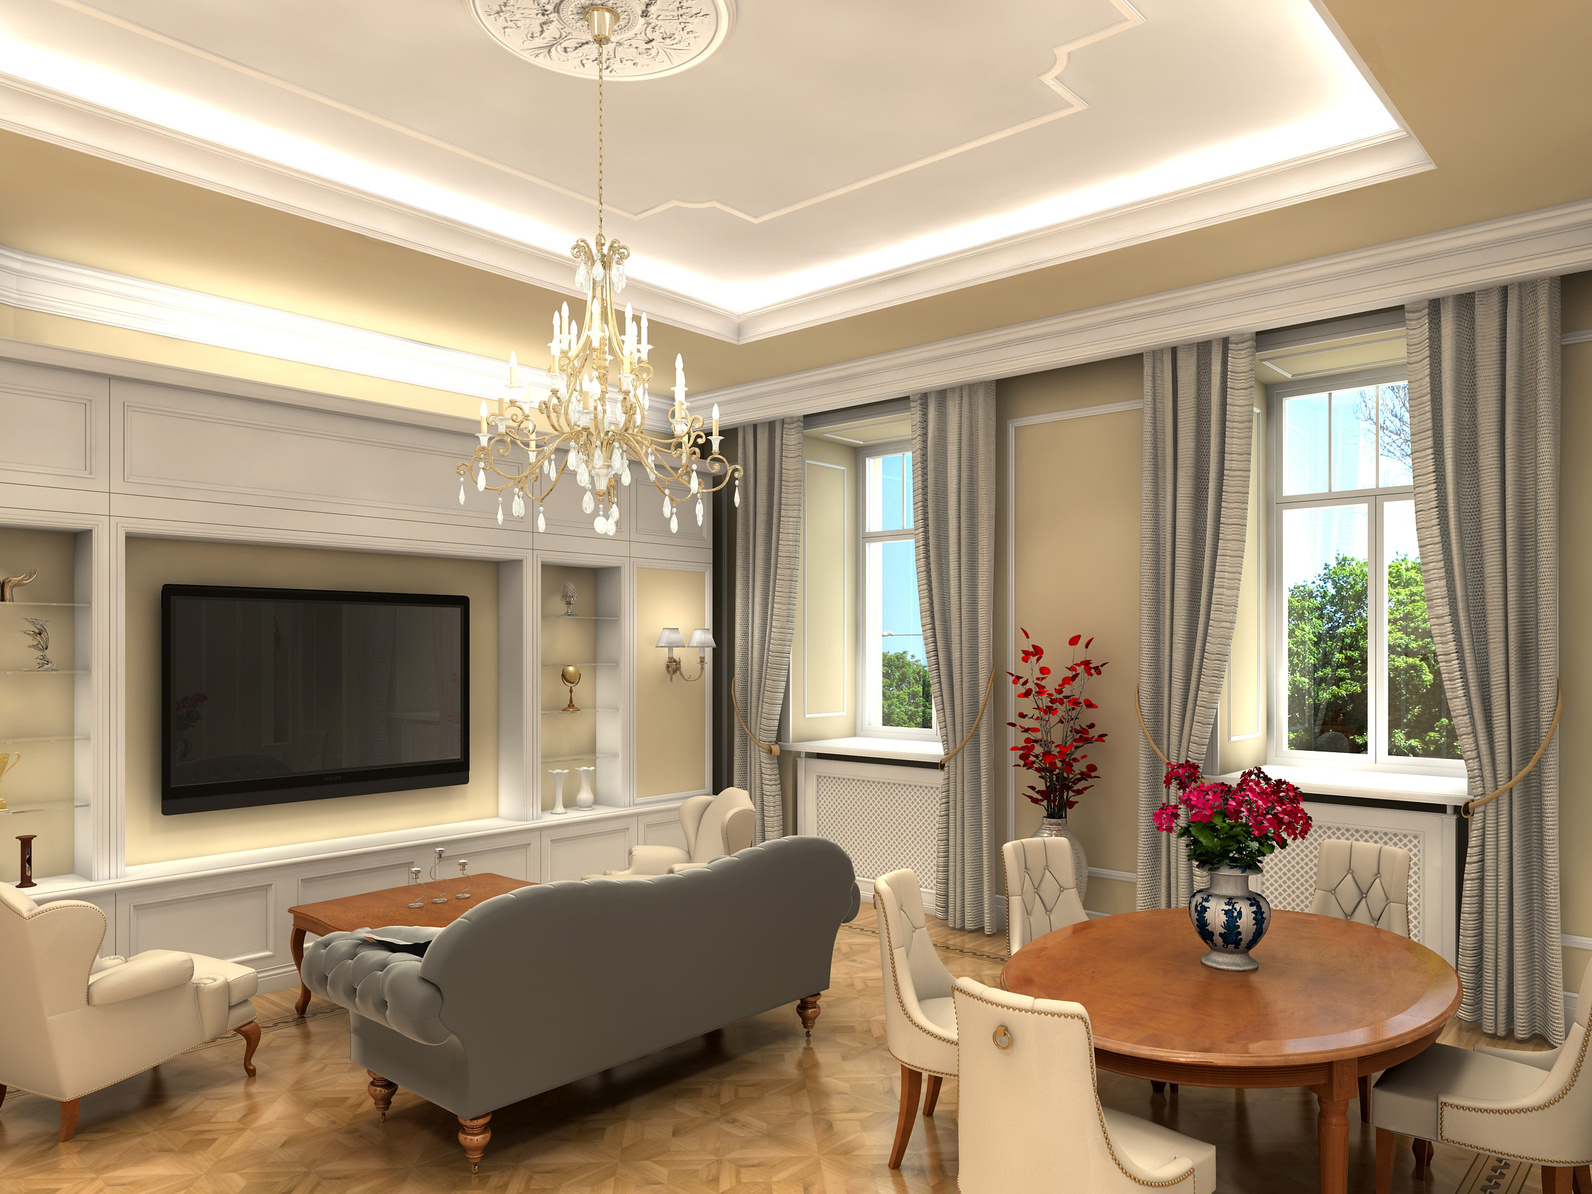 5 unique window treatment ideas for your living room global home improvement